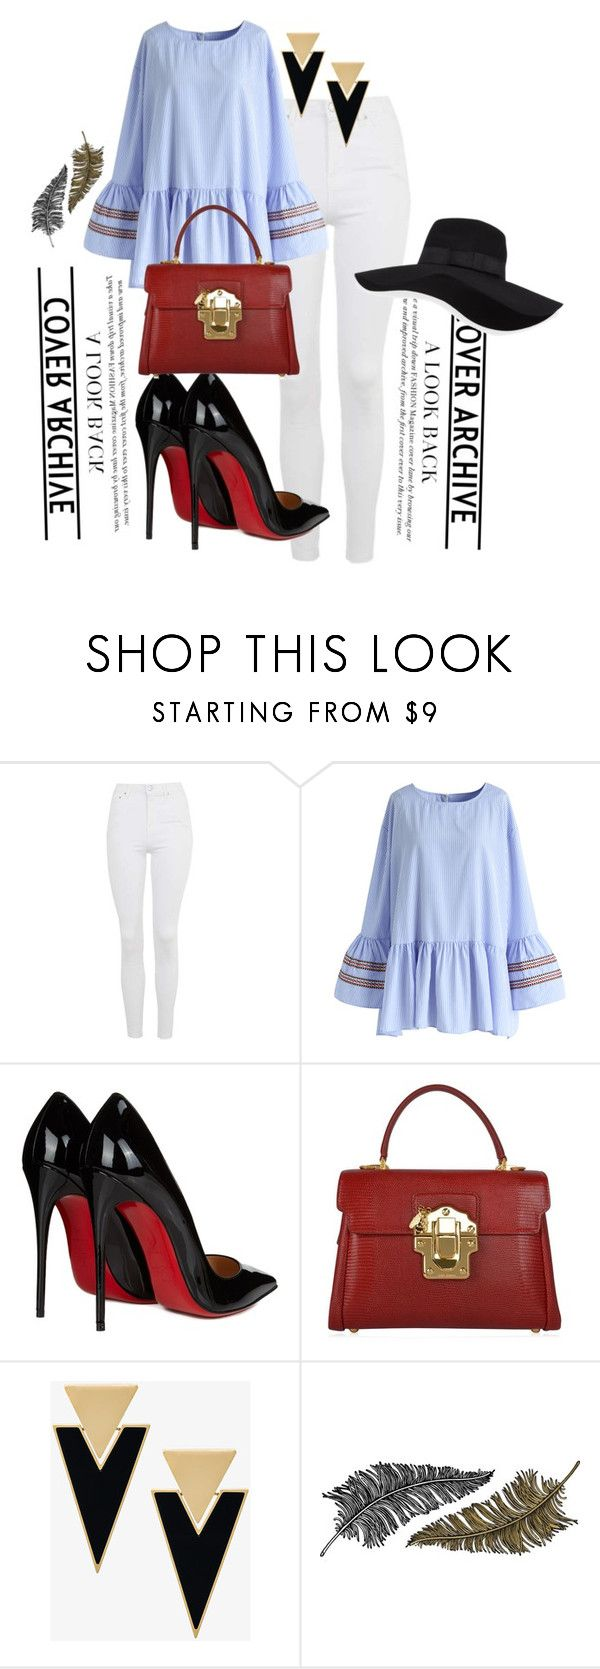 """""""<----->"""" by adaleta13 ❤ liked on Polyvore featuring Topshop, Chicwish, Christian Louboutin, Dolce&Gabbana, Yves Saint Laurent, Paperself and San Diego Hat Co."""